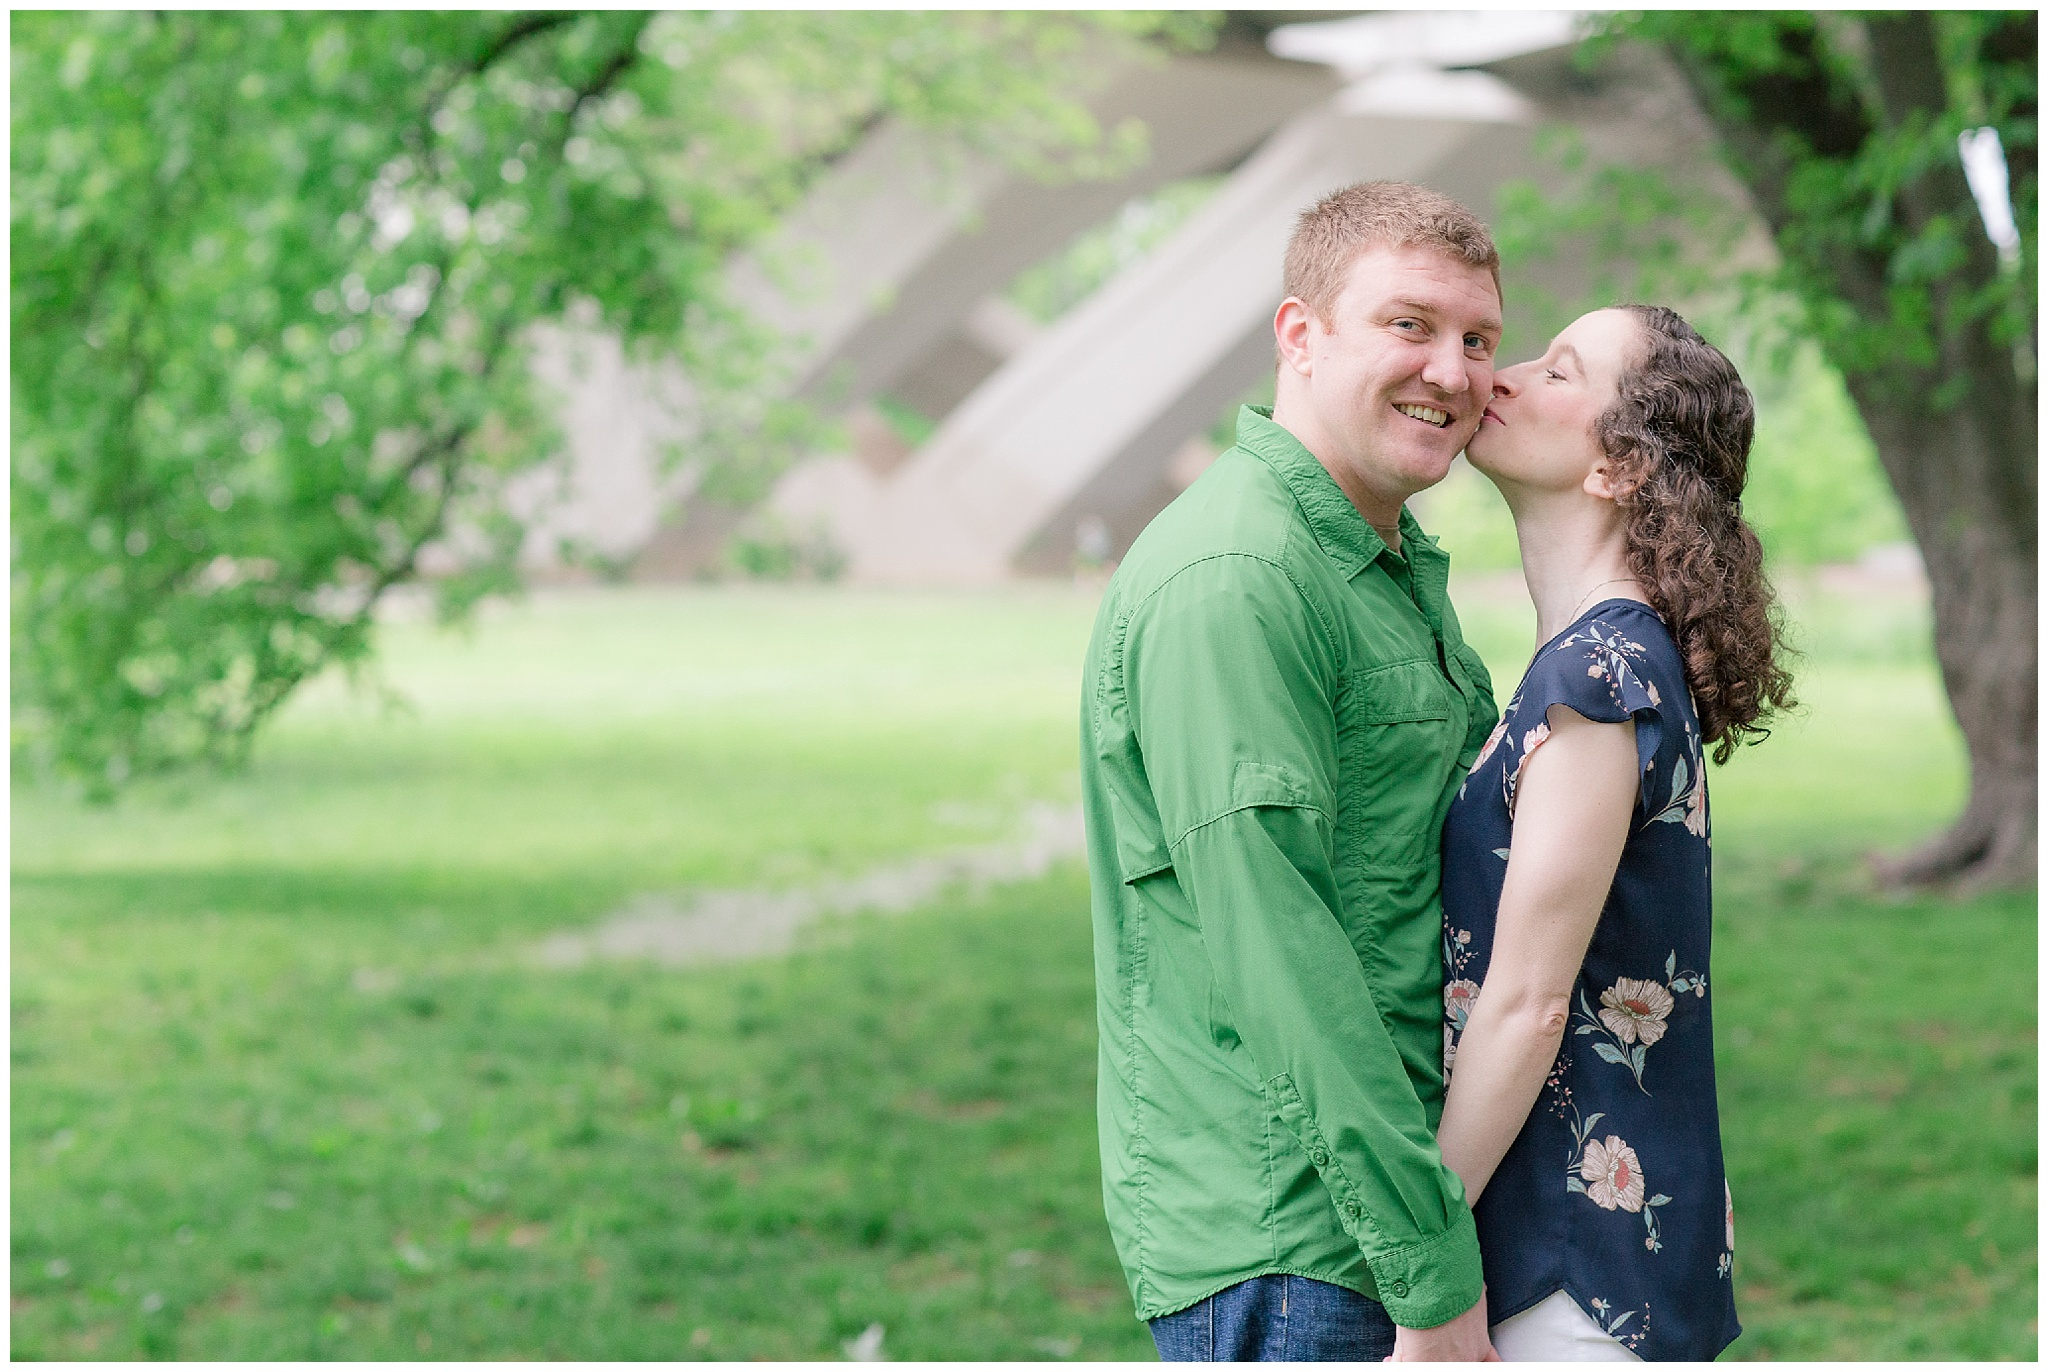 engagement_session_detweiler_0009.jpg